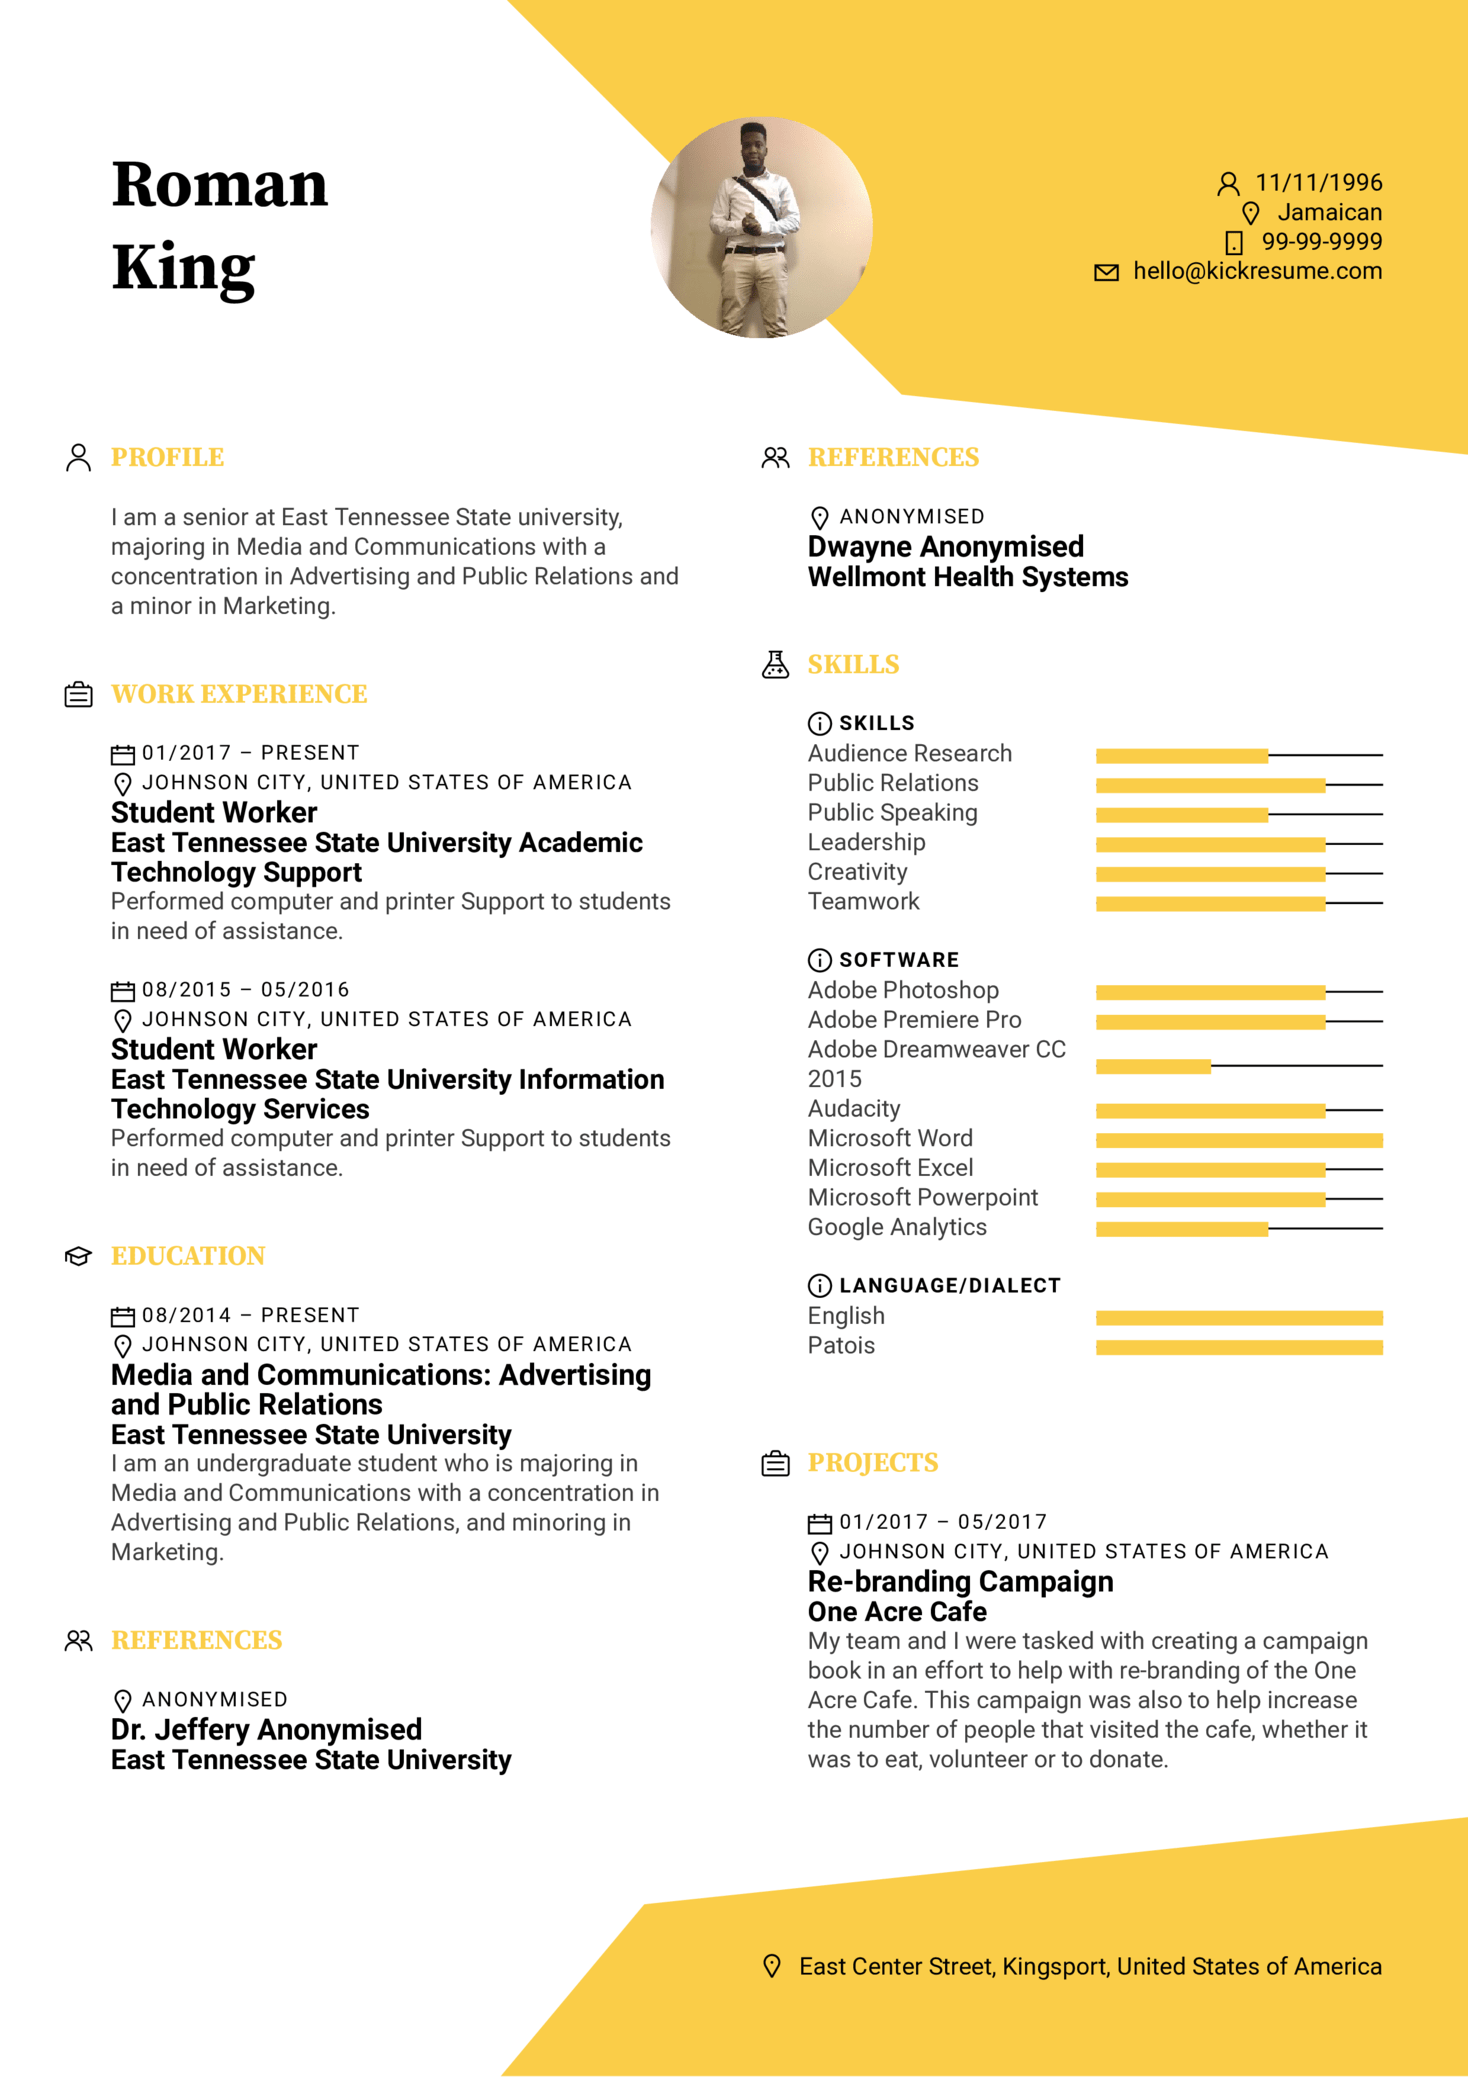 life career resume builder